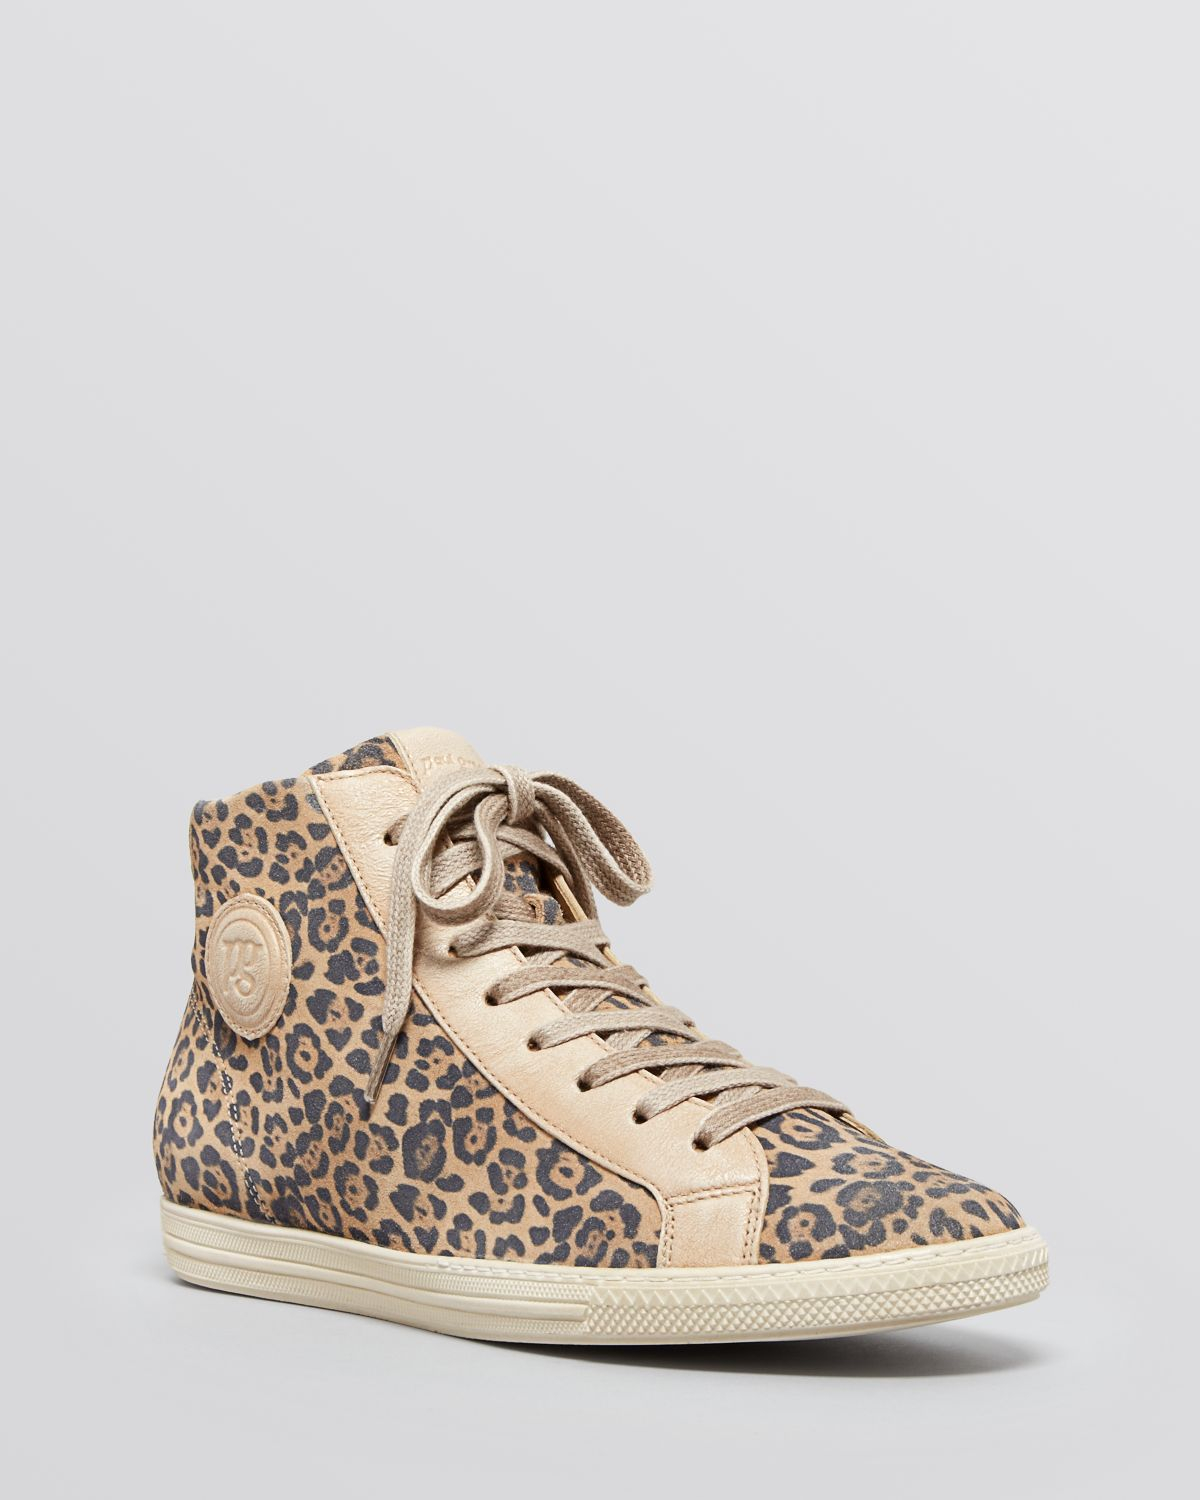 paul green lace up high top sneakers venus leopard print in gray leopard lyst. Black Bedroom Furniture Sets. Home Design Ideas